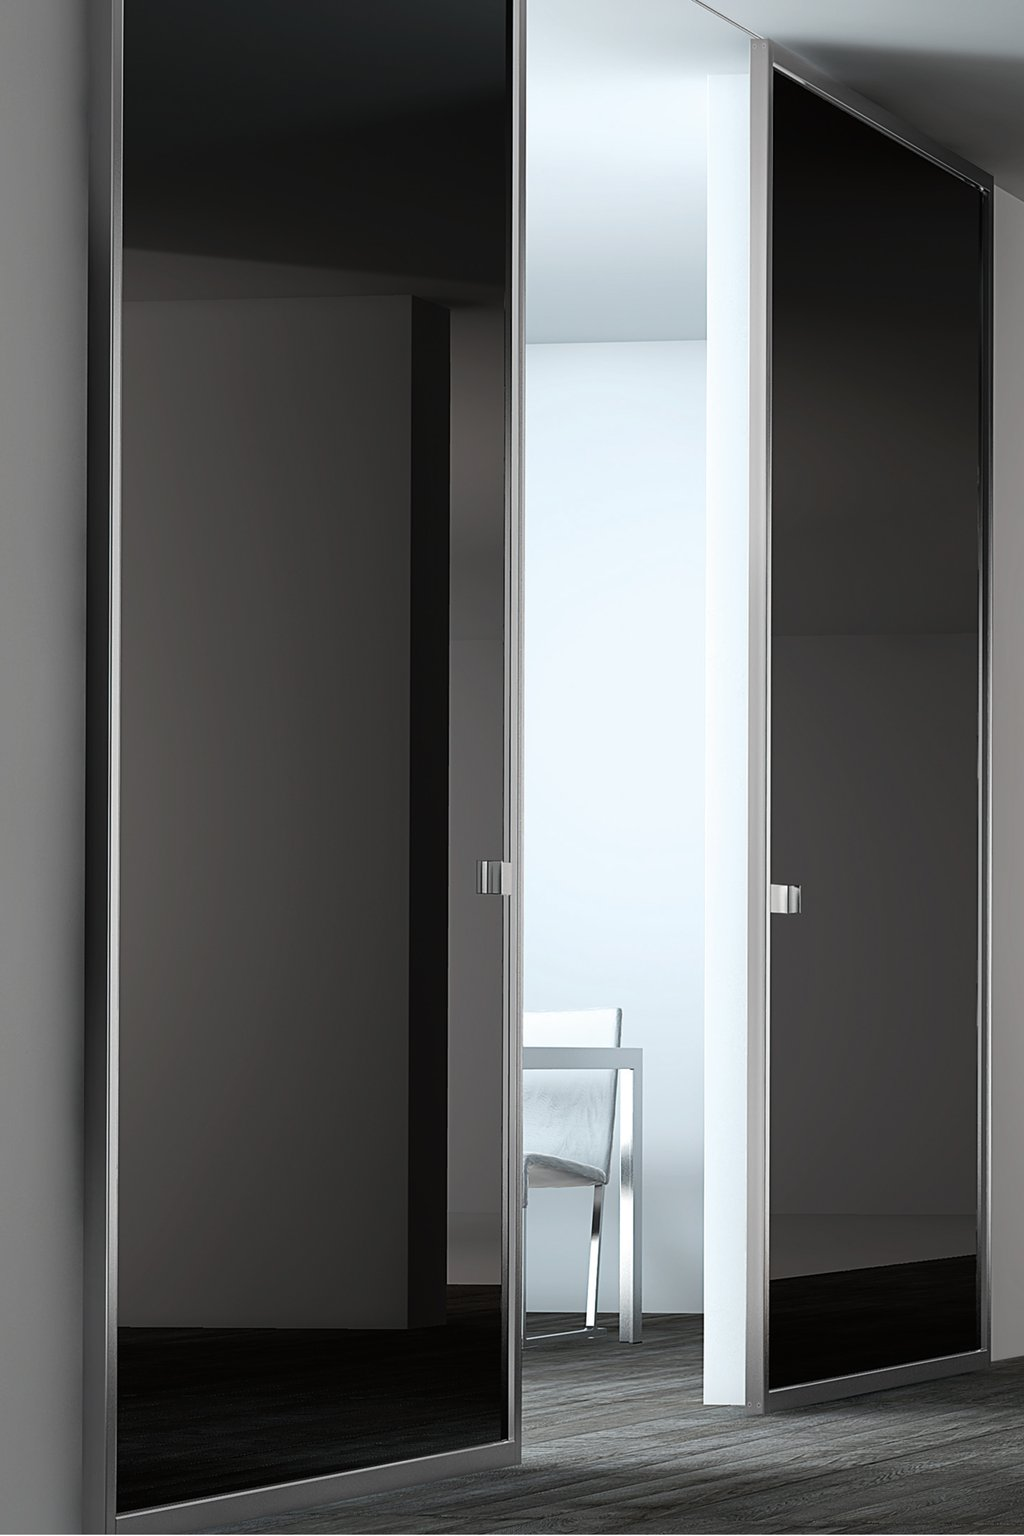 Doors ontario welcome to the doors open ontario website for Interior glass doors